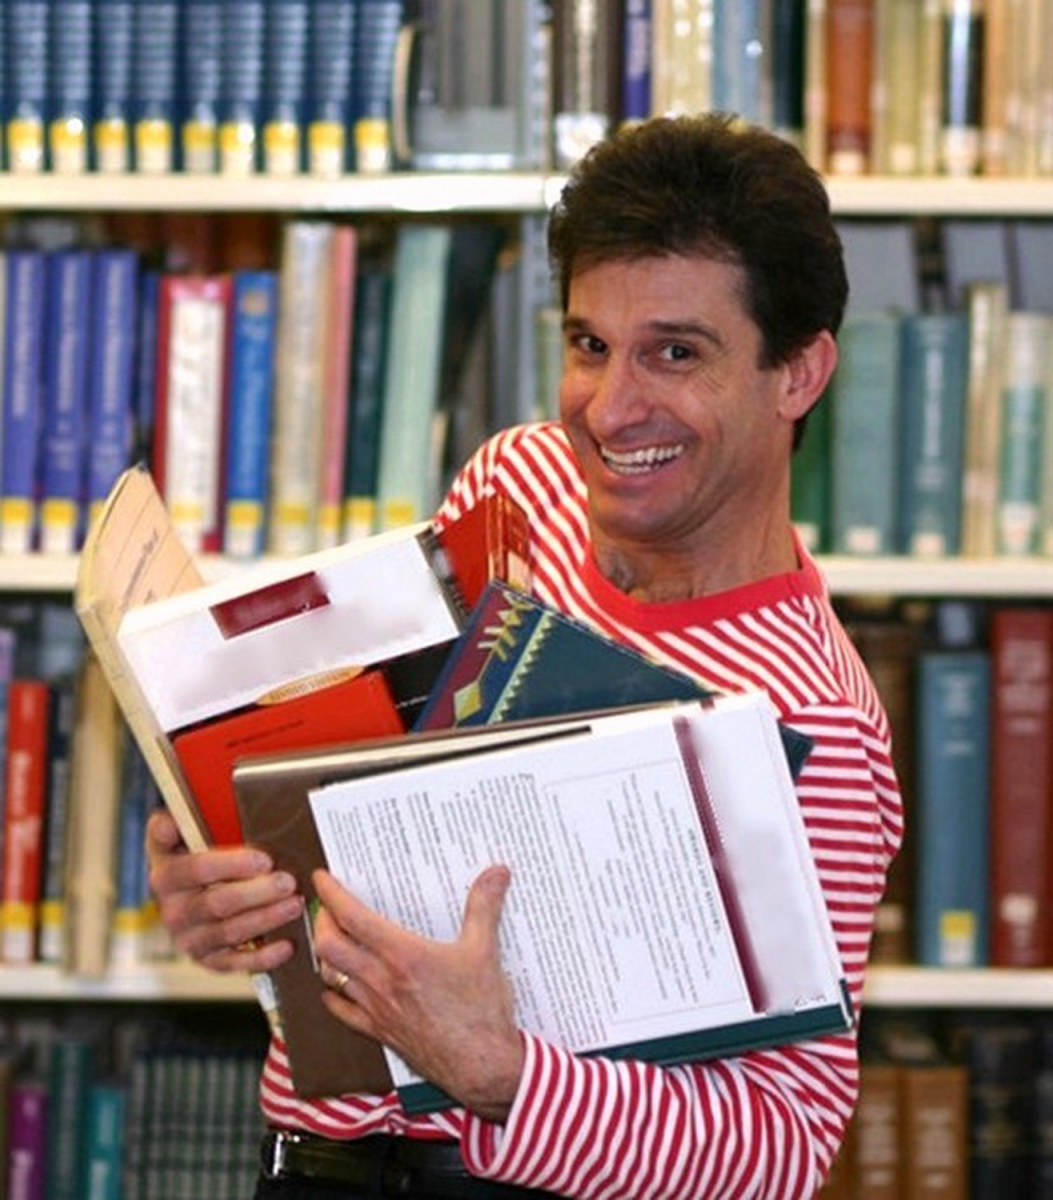 Chris Fascione holding lots of books and smiling at the camera.